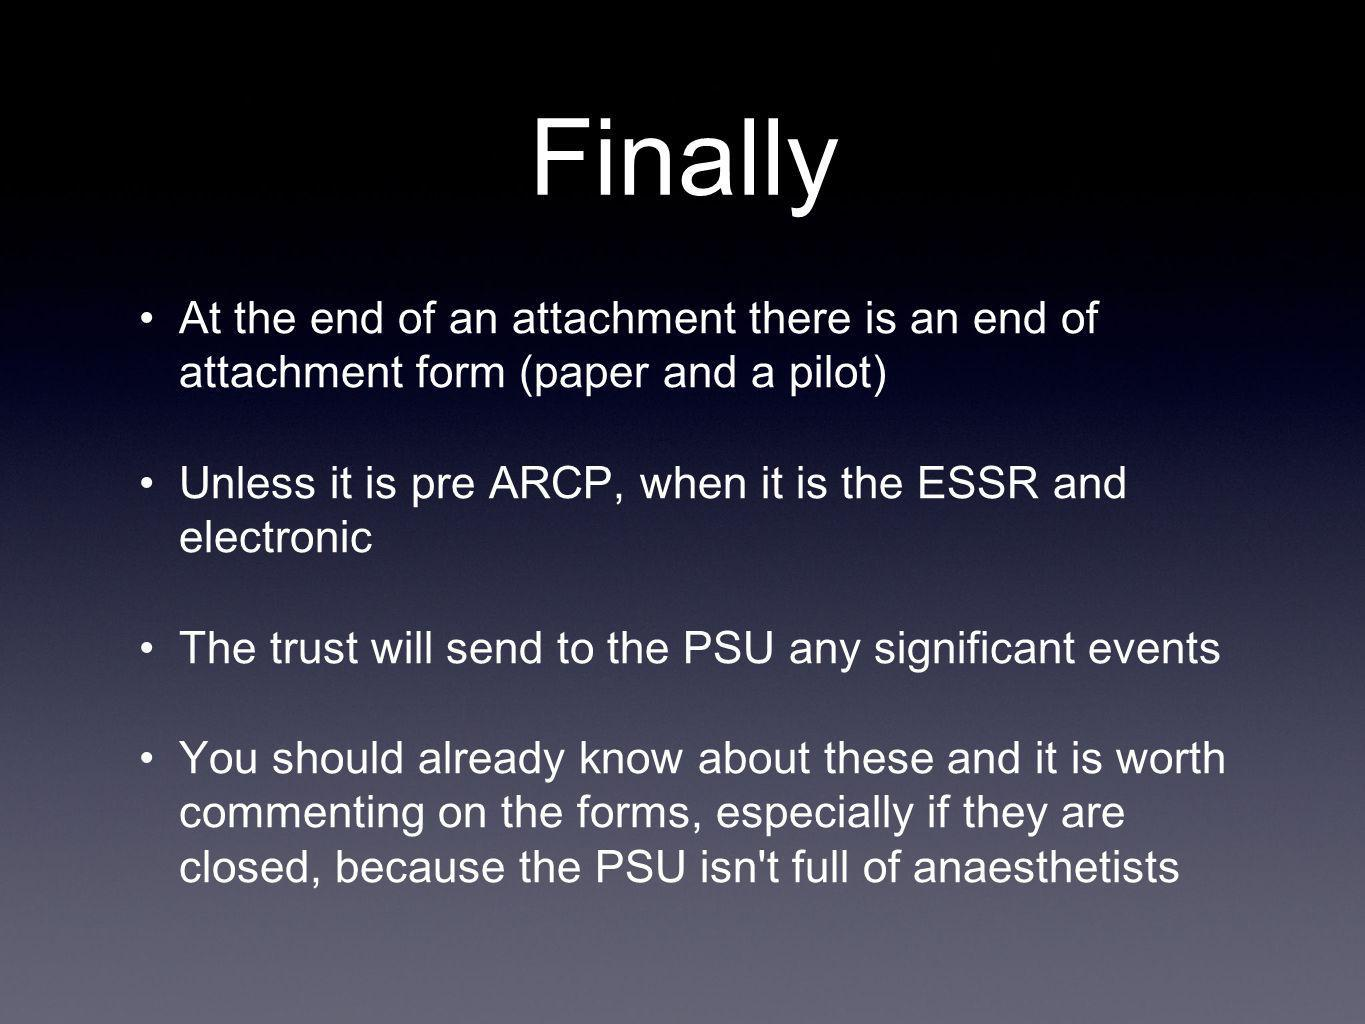 Finally At the end of an attachment there is an end of attachment form (paper and a pilot) Unless it is pre ARCP, when it is the ESSR and electronic The trust will send to the PSU any significant events You should already know about these and it is worth commenting on the forms, especially if they are closed, because the PSU isn t full of anaesthetists